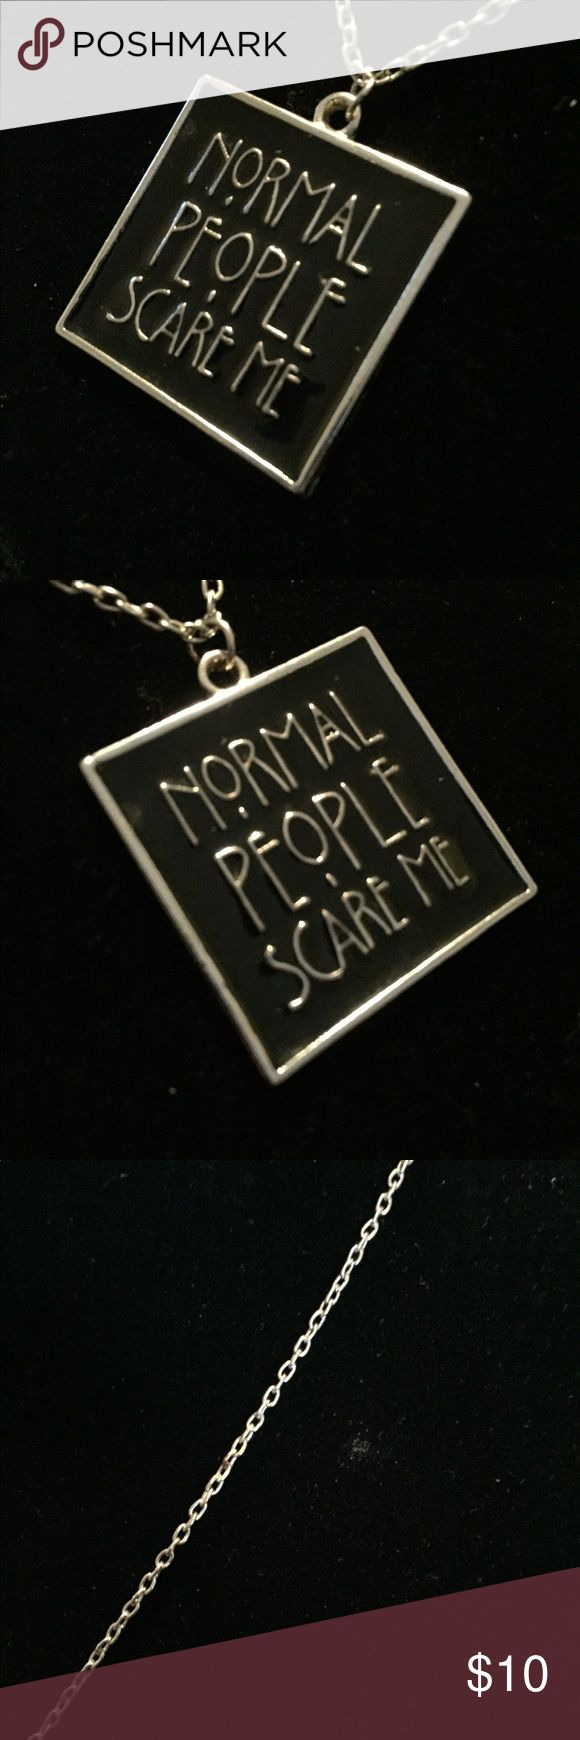 "Cult Of Personality American Horror Story Necklace Cult Of Personality, American Horror Story, Normal People Scare Me, Pendant Necklace. The Pendant Is Silver Tone Metal With Black Enamel.  Measurements:  Pendant - 1.25"" Tall x 1.25"" Wide Necklace Chain - 22"" Long Fully Adjustable To Any Size New With Tags.  There are of three of these currently available. Emporiama's Cult Of Personality Jewelry Necklaces"